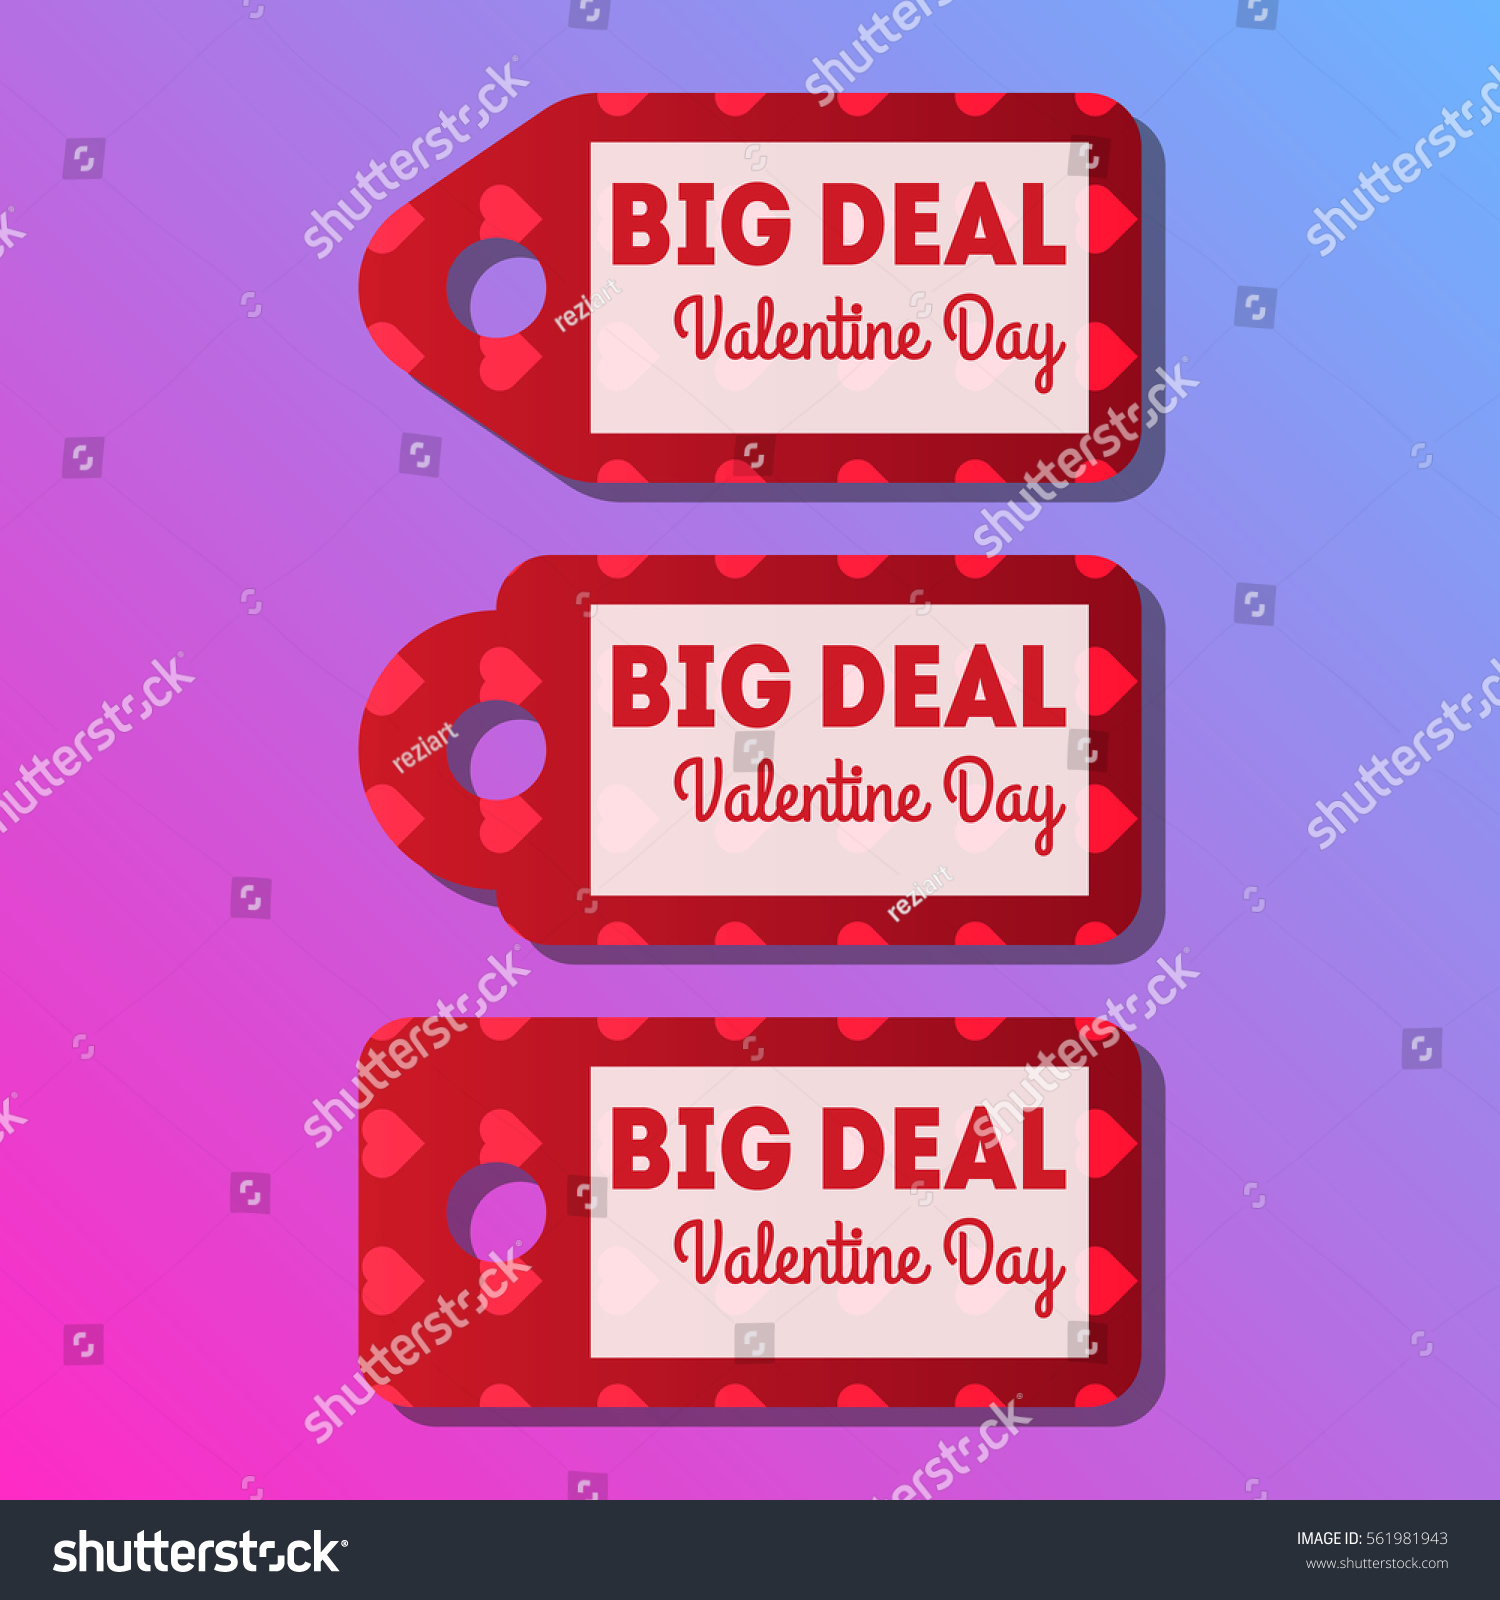 Greeting card voucher discount sale price stock vector 561981943 greeting card voucher discount sale price tag for business use or invitation kristyandbryce Image collections